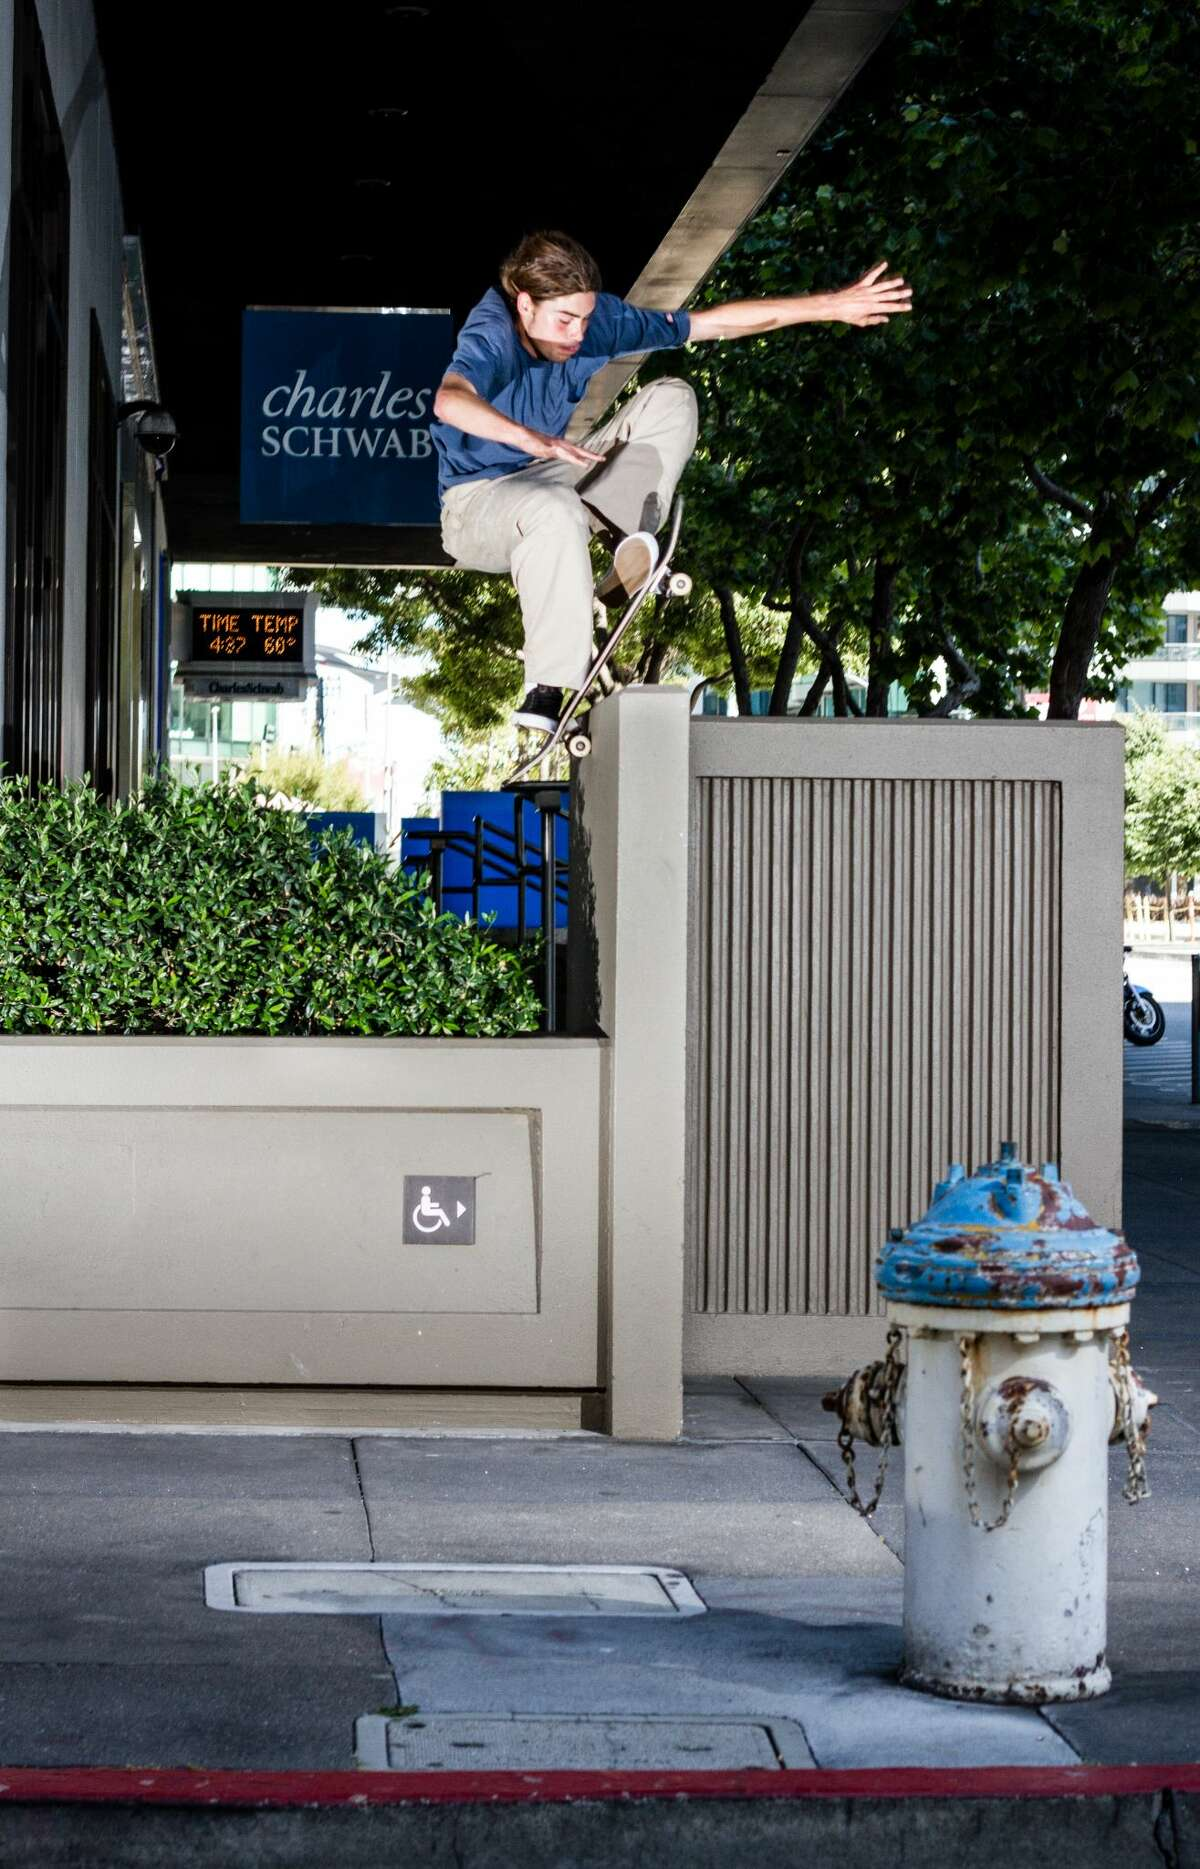 Chris Athens of Deep Fried flies up and over a wall near the Charles Schwab offices in downtown San Francisco.